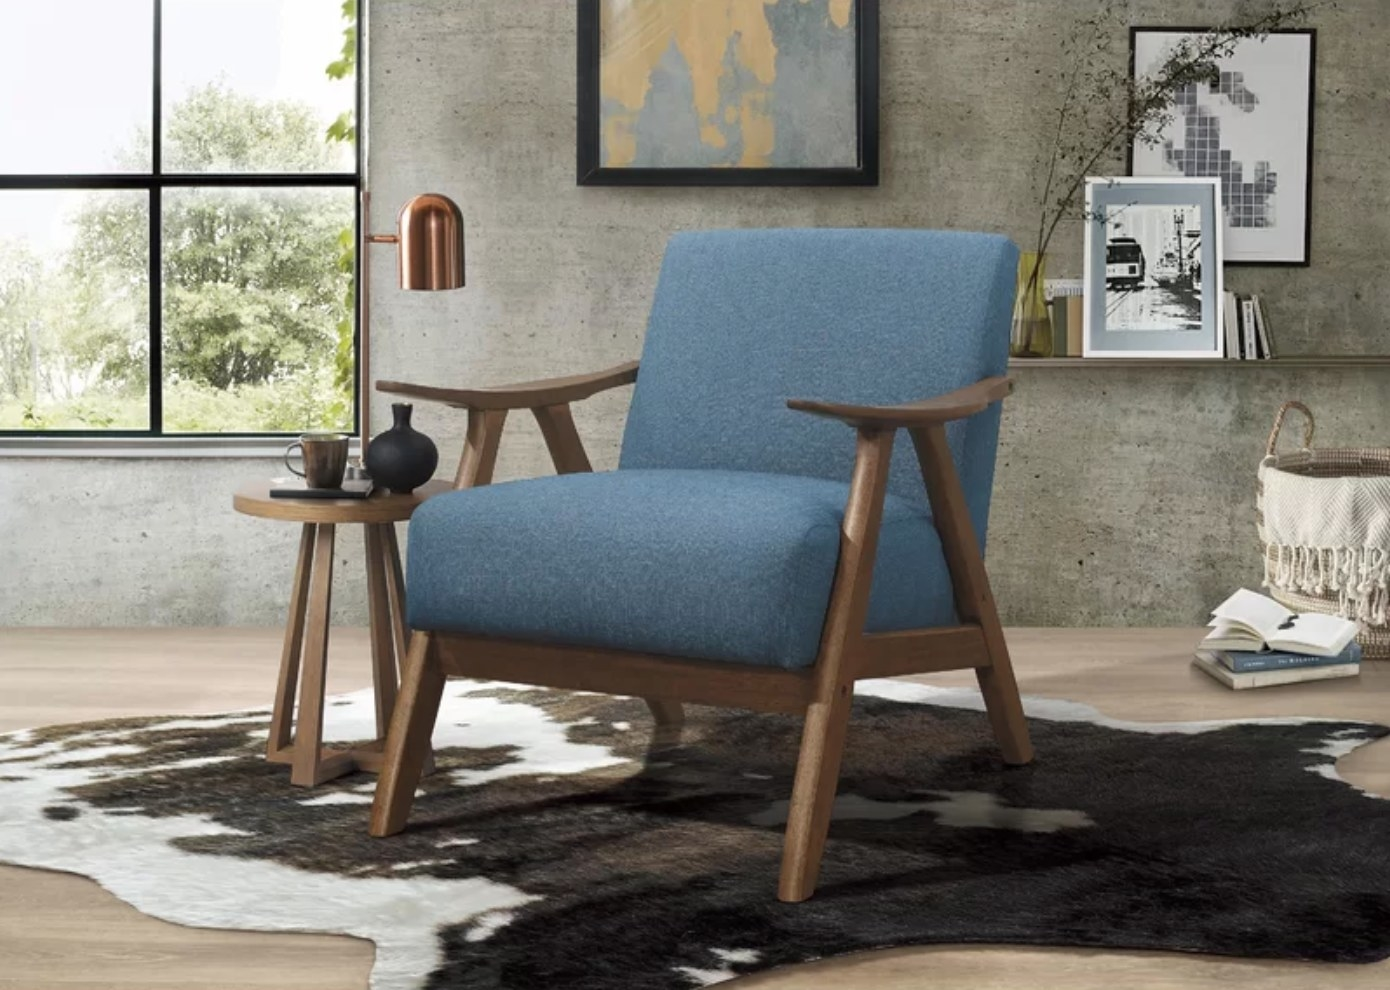 The mid-century armchair in blue polyester